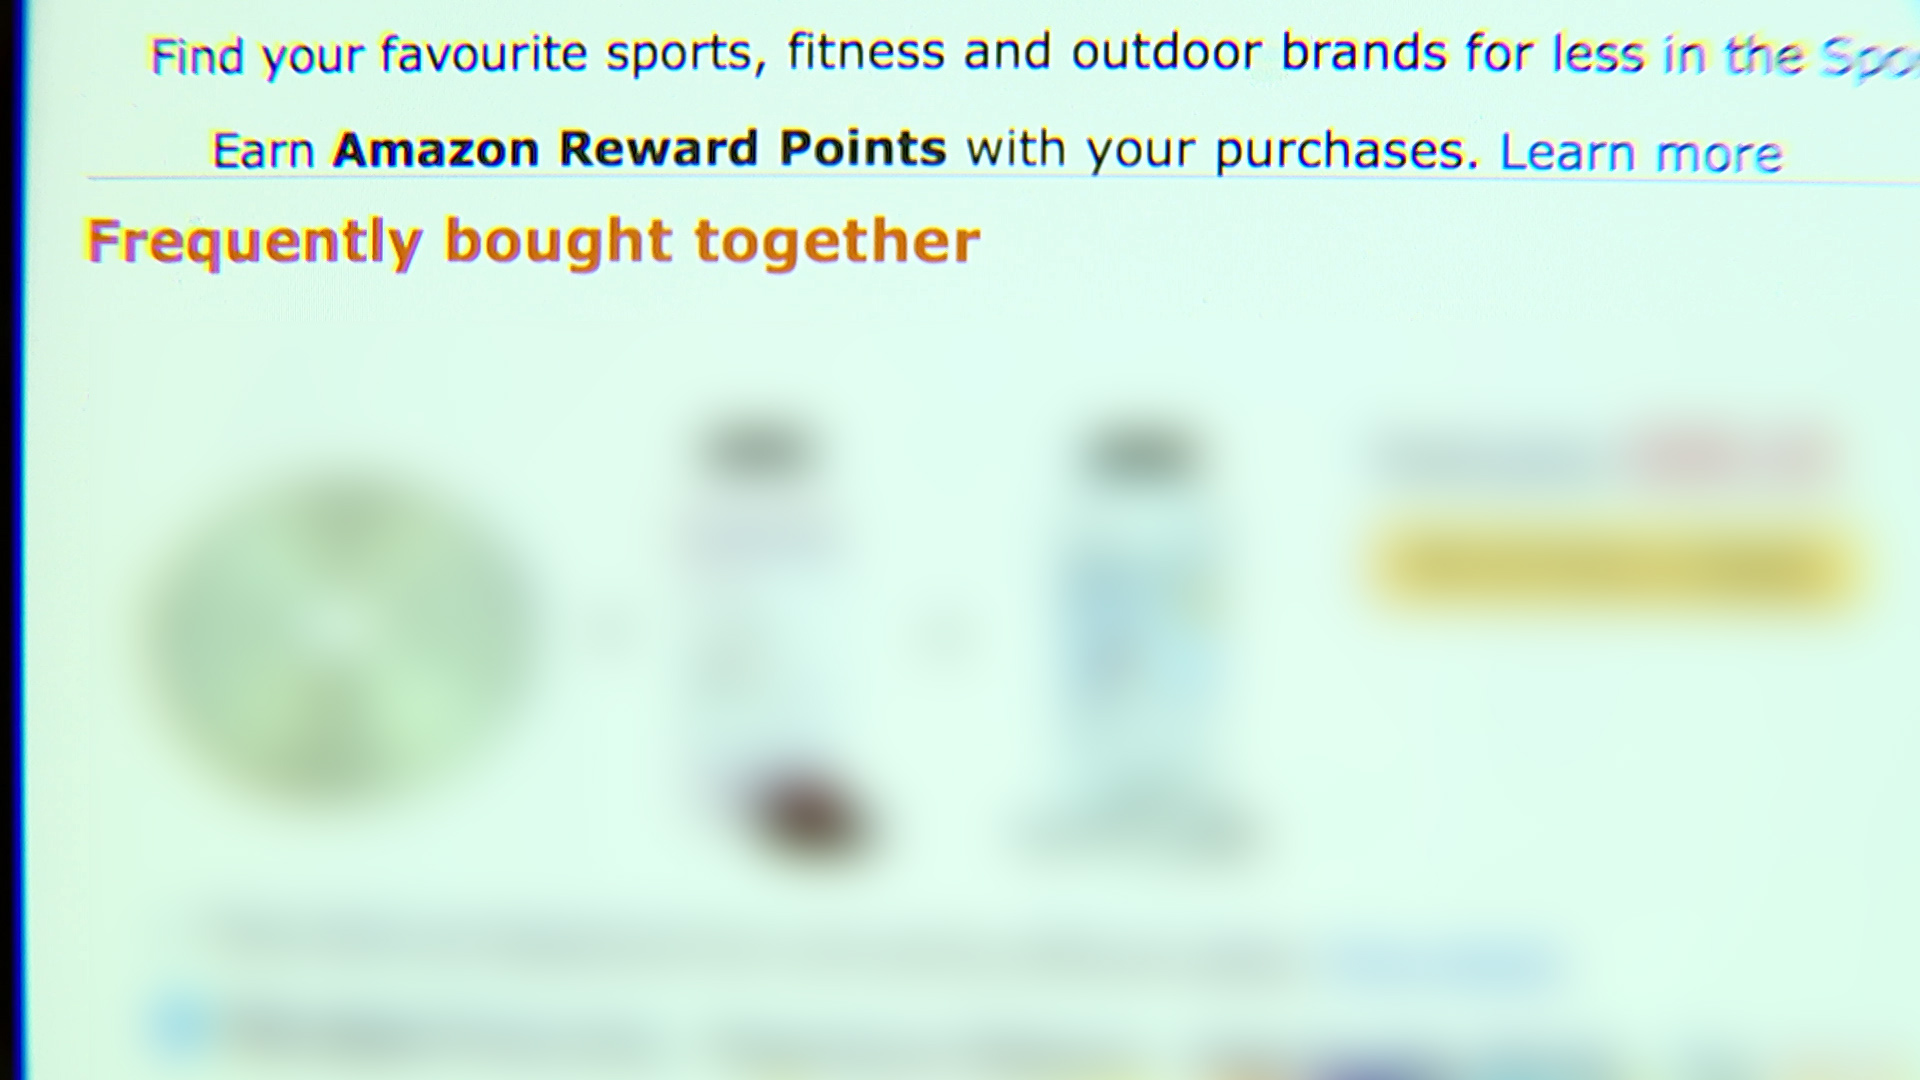 Amazon's 'frequently bought together' section suggests materials to build a bomb